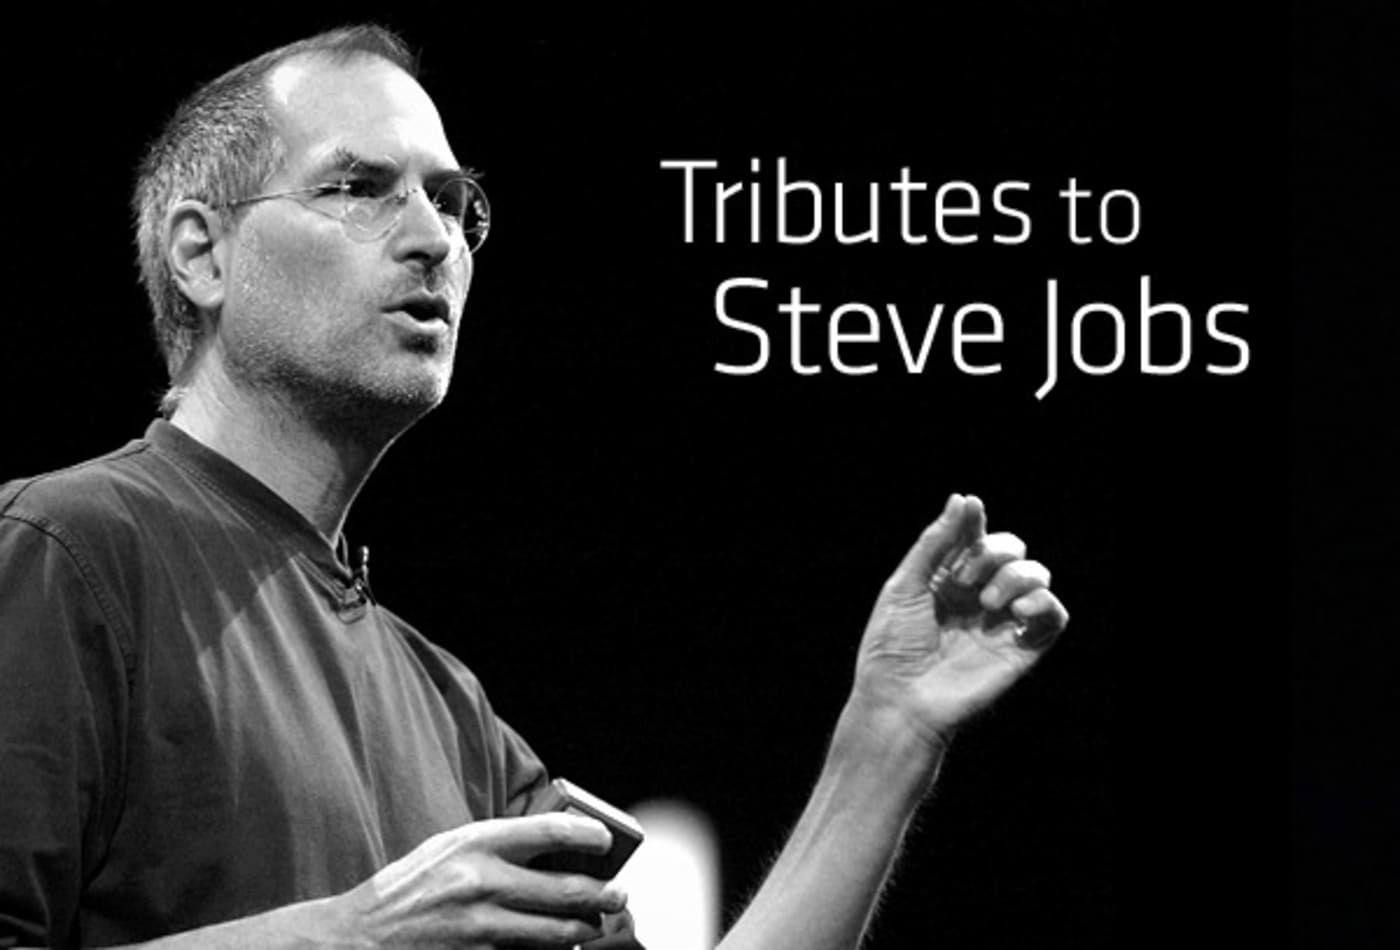 steve-jobs-passed-away-remembering-cnbs-cover1.jpg